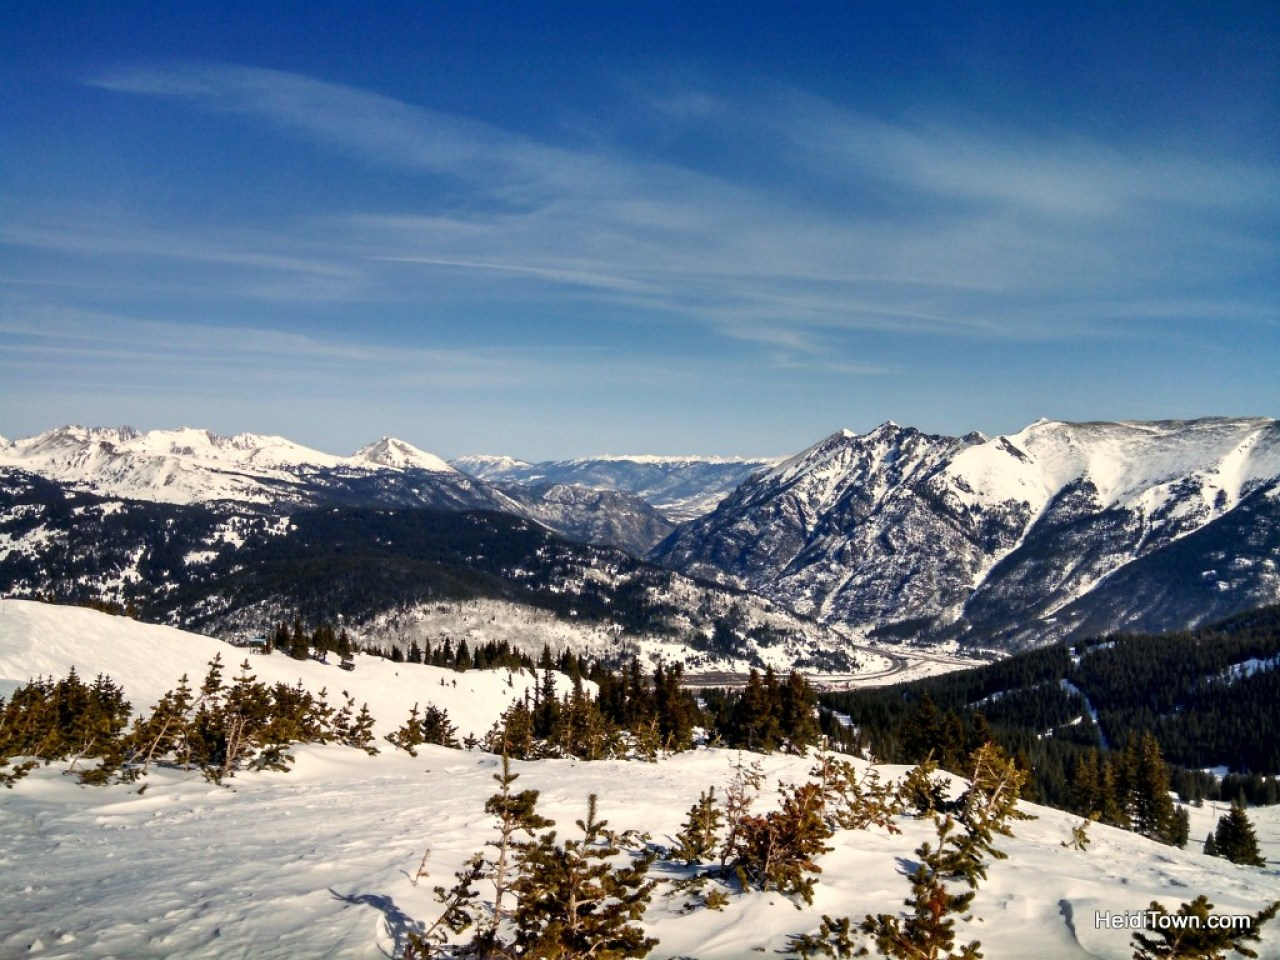 The view from the top of Copper Mountain. Colorado skiing. HeidiTown.com